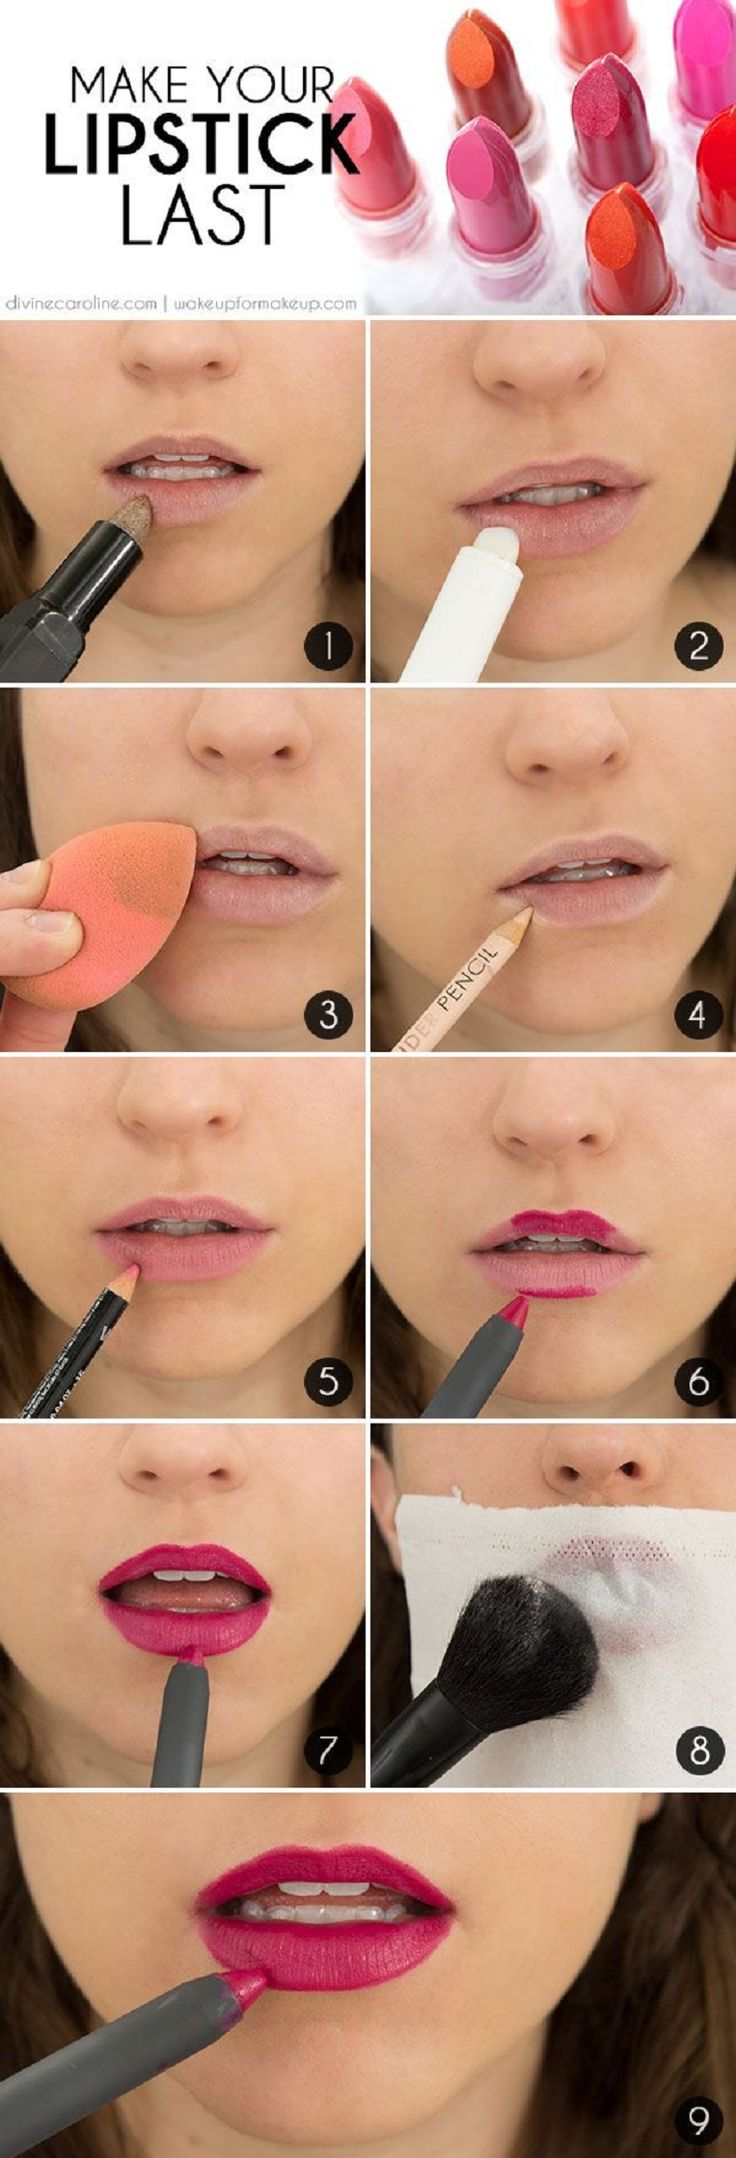 5 Makeup Hacks That Will Improve Your Beauty Routine